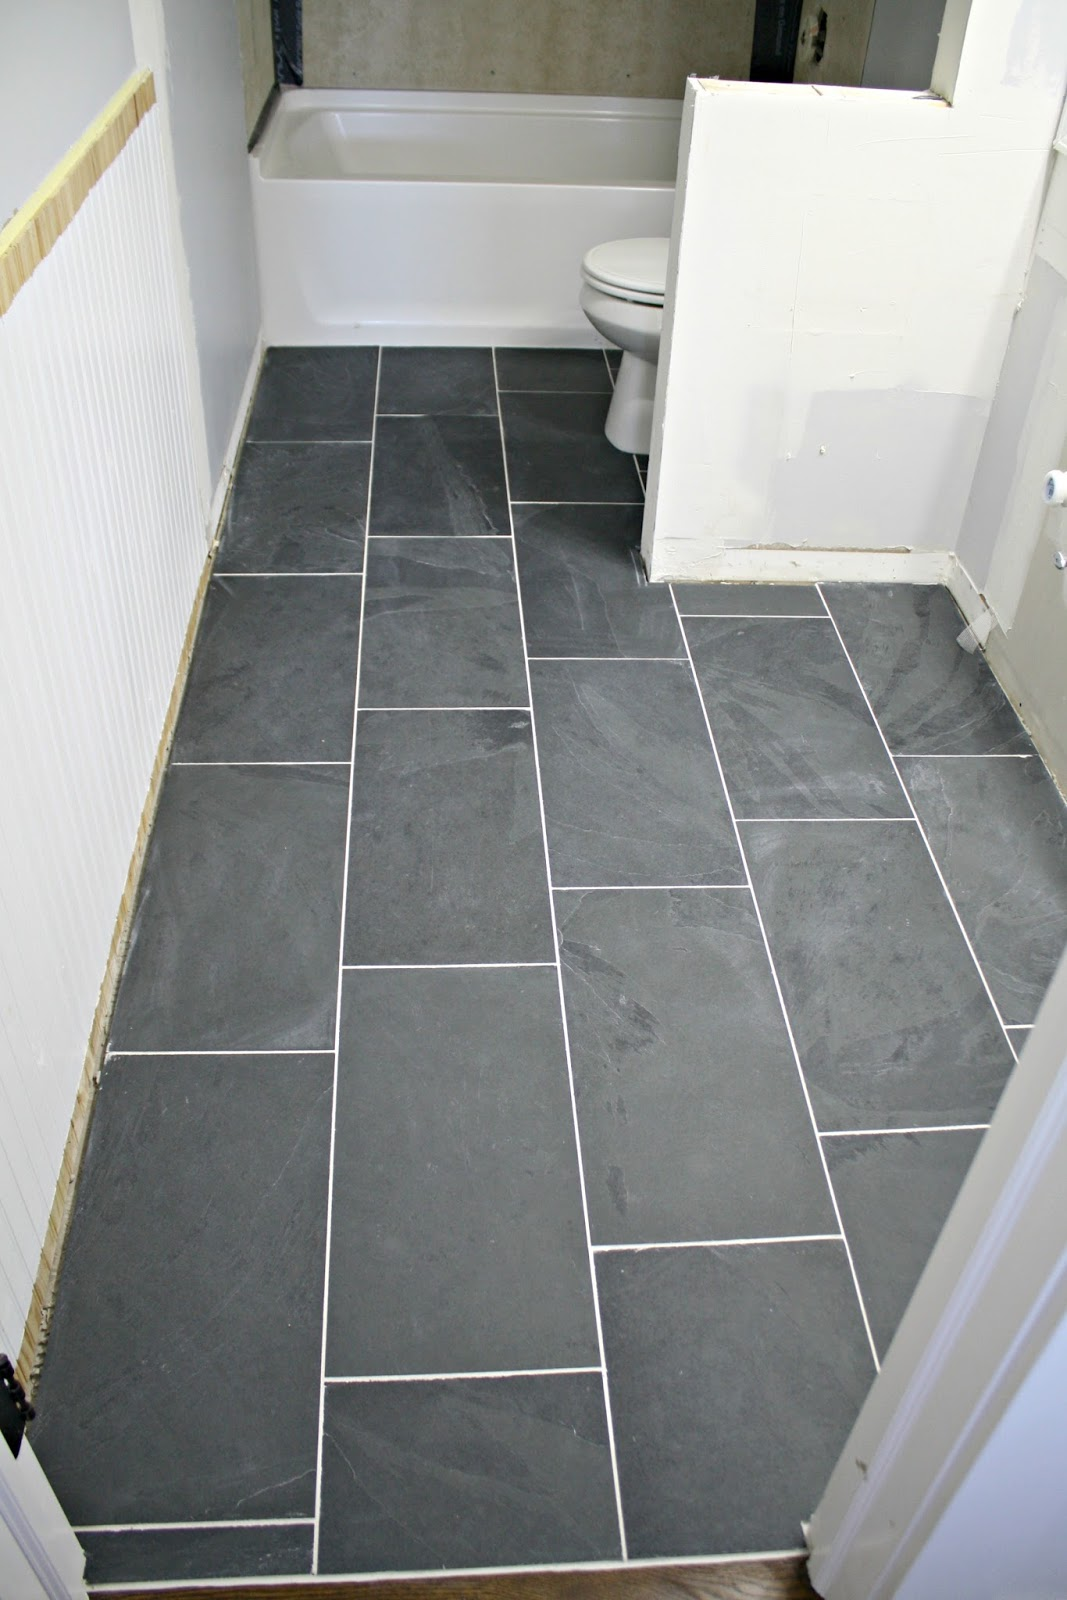 How to tile a bathroom floor its done from Thrifty